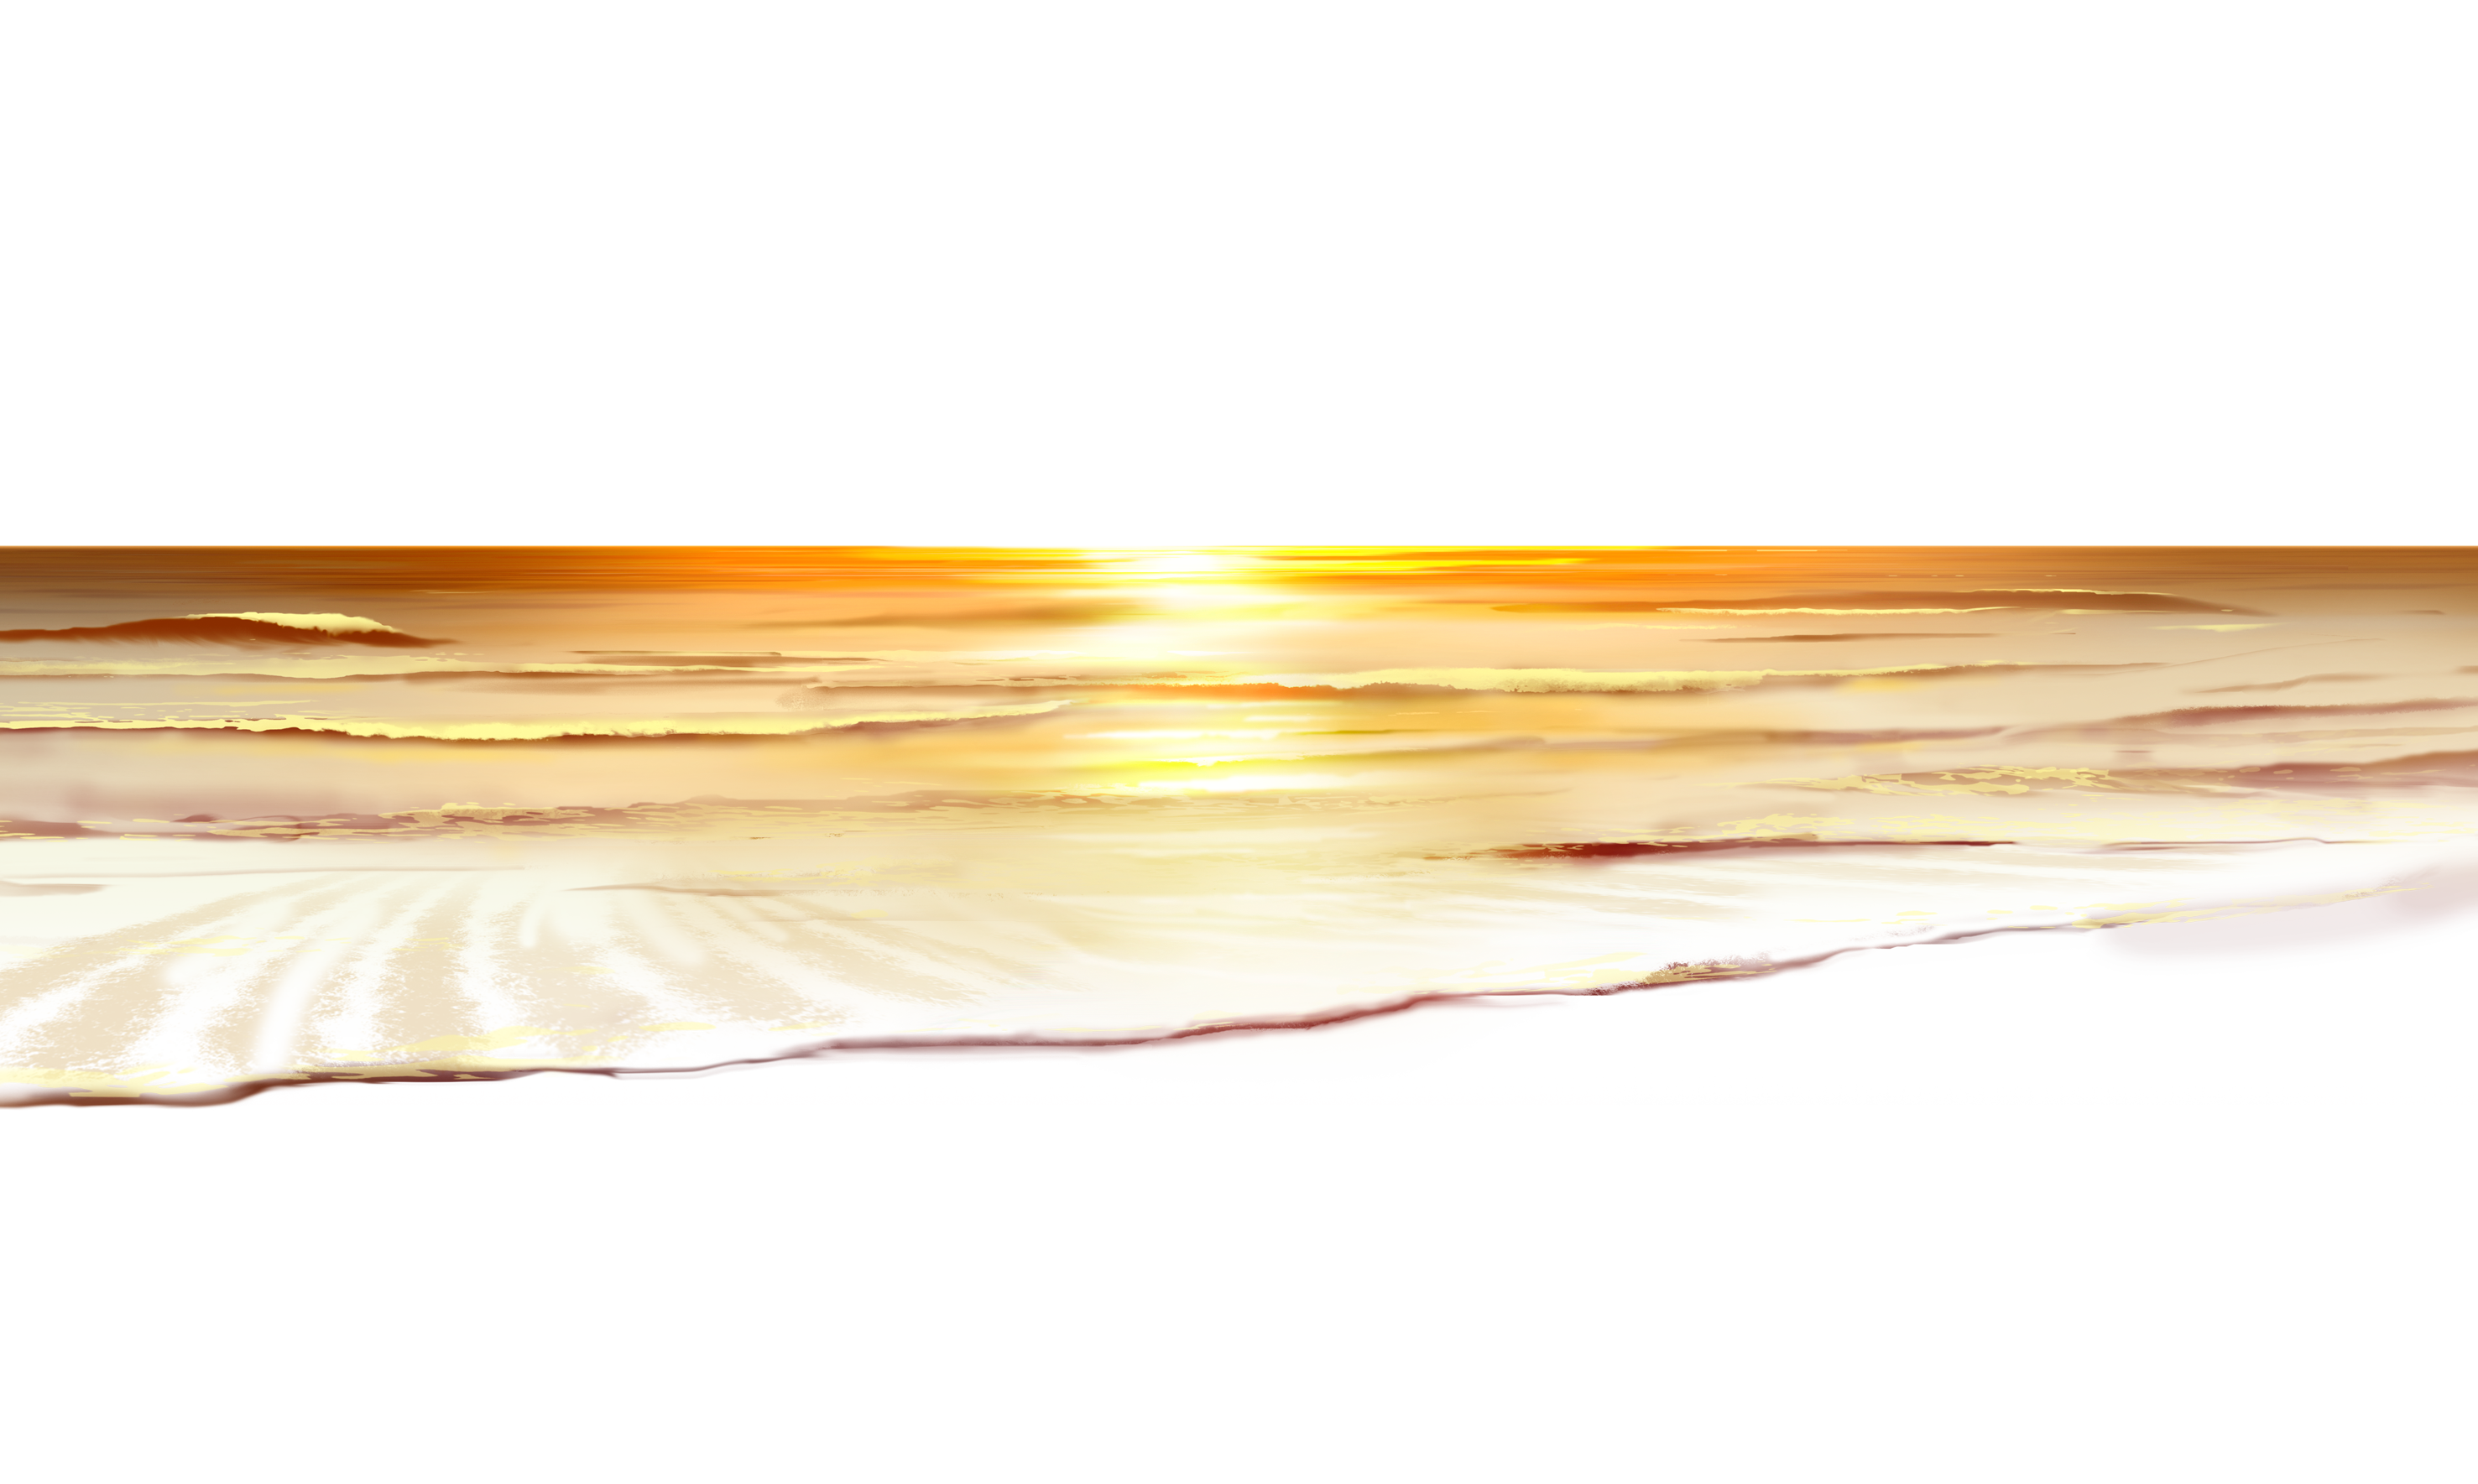 Clipart grass sun. Sea sunset ground png